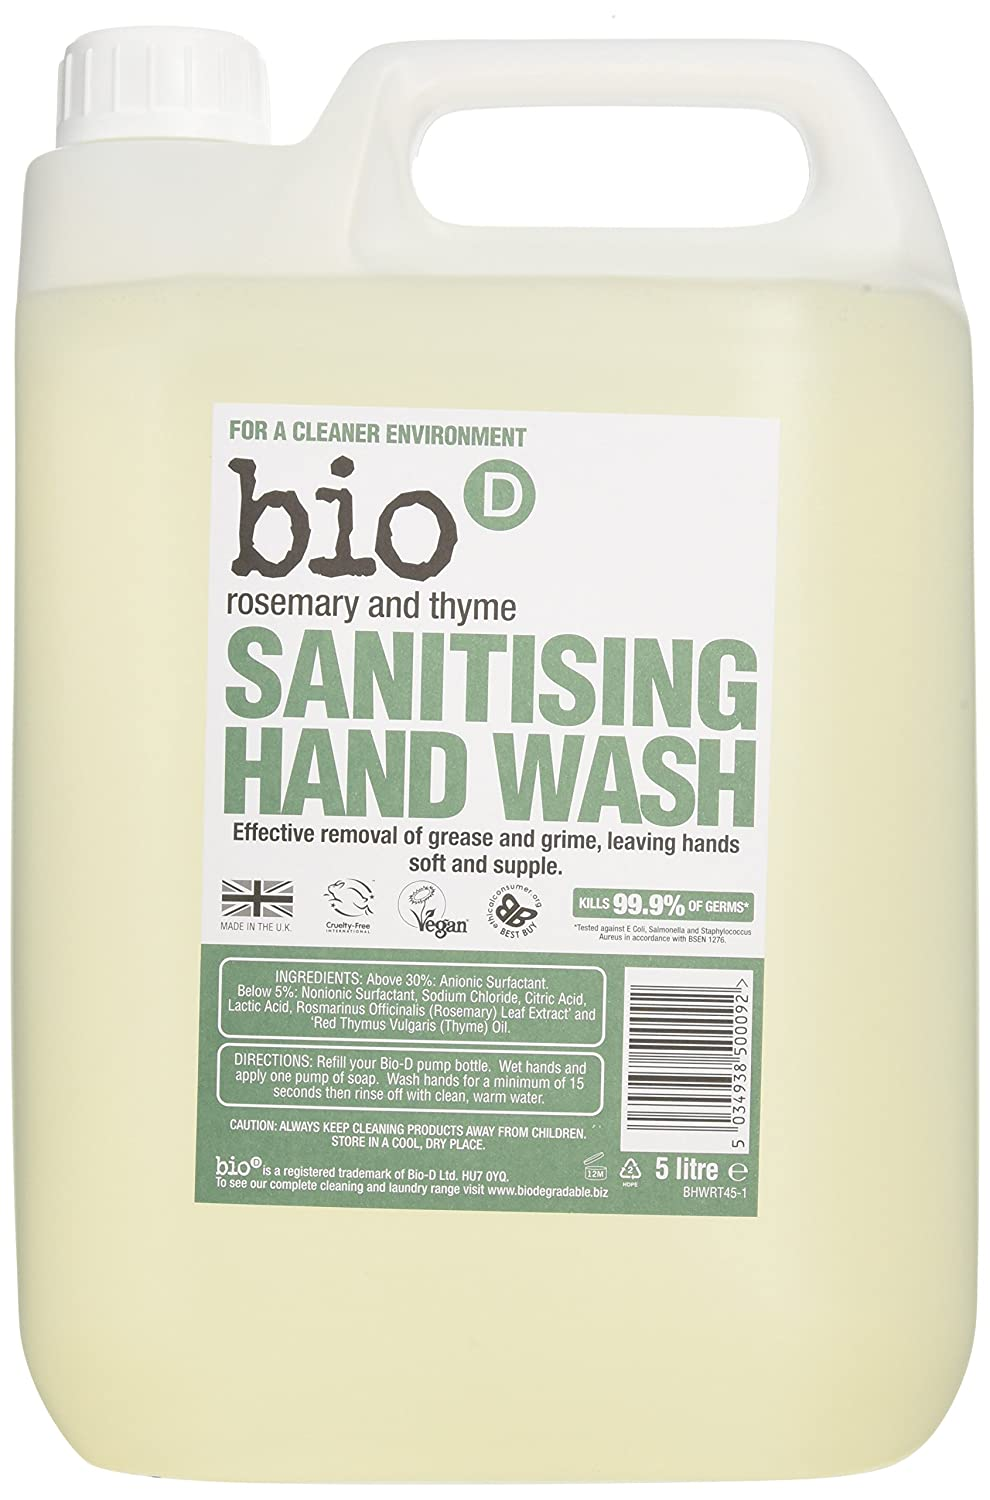 Bio D 5 Litre Rosemary and Thyme Sanitising Hand Wash 85243